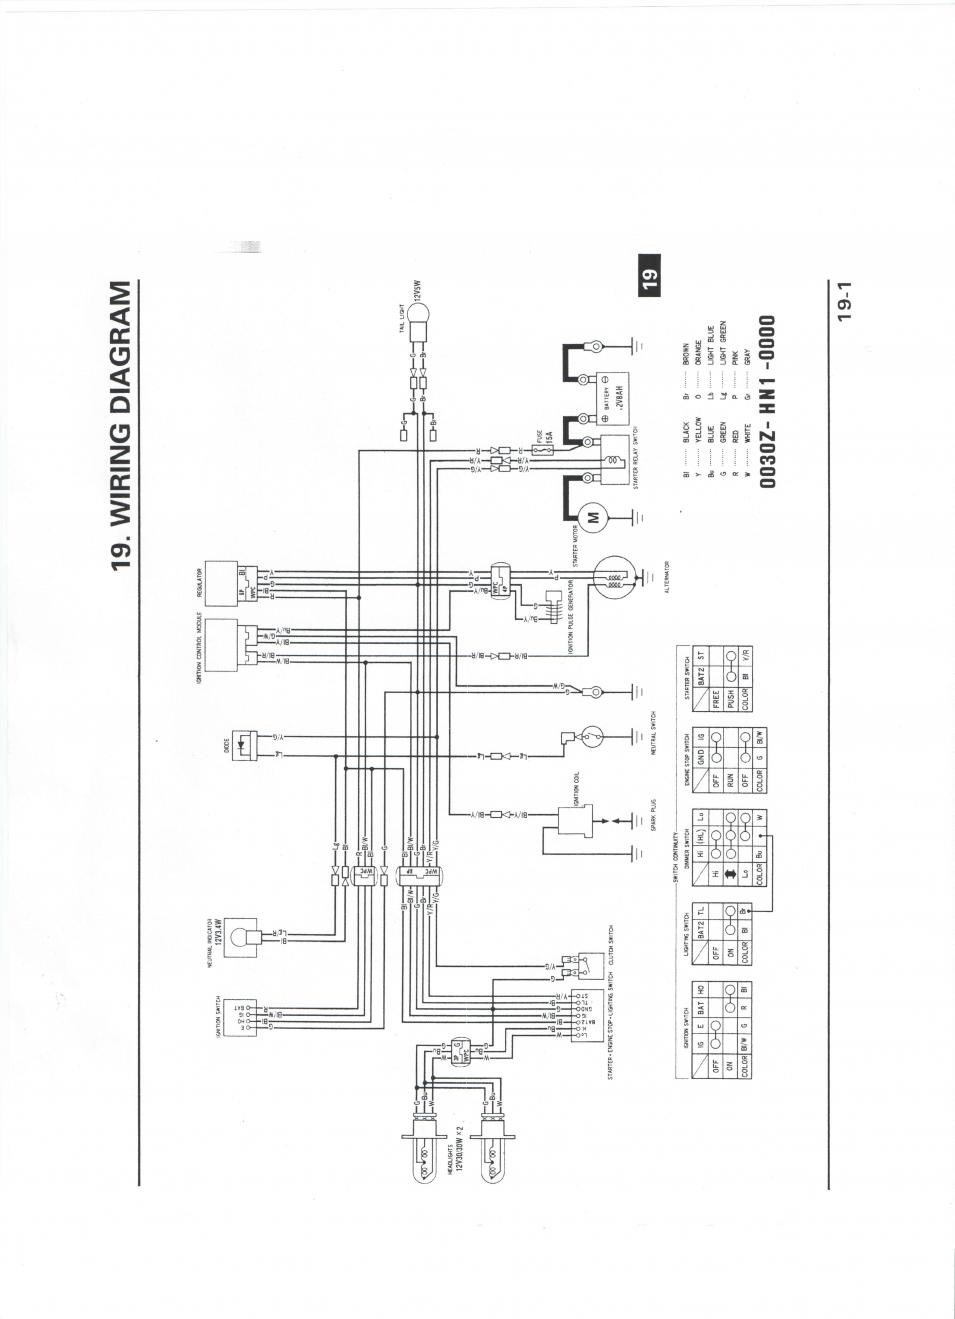 hight resolution of honda 400ex ignition wiring diagram wiring diagram toolboxhonda 400ex wiring pdf wiring diagrams konsult 02 honda